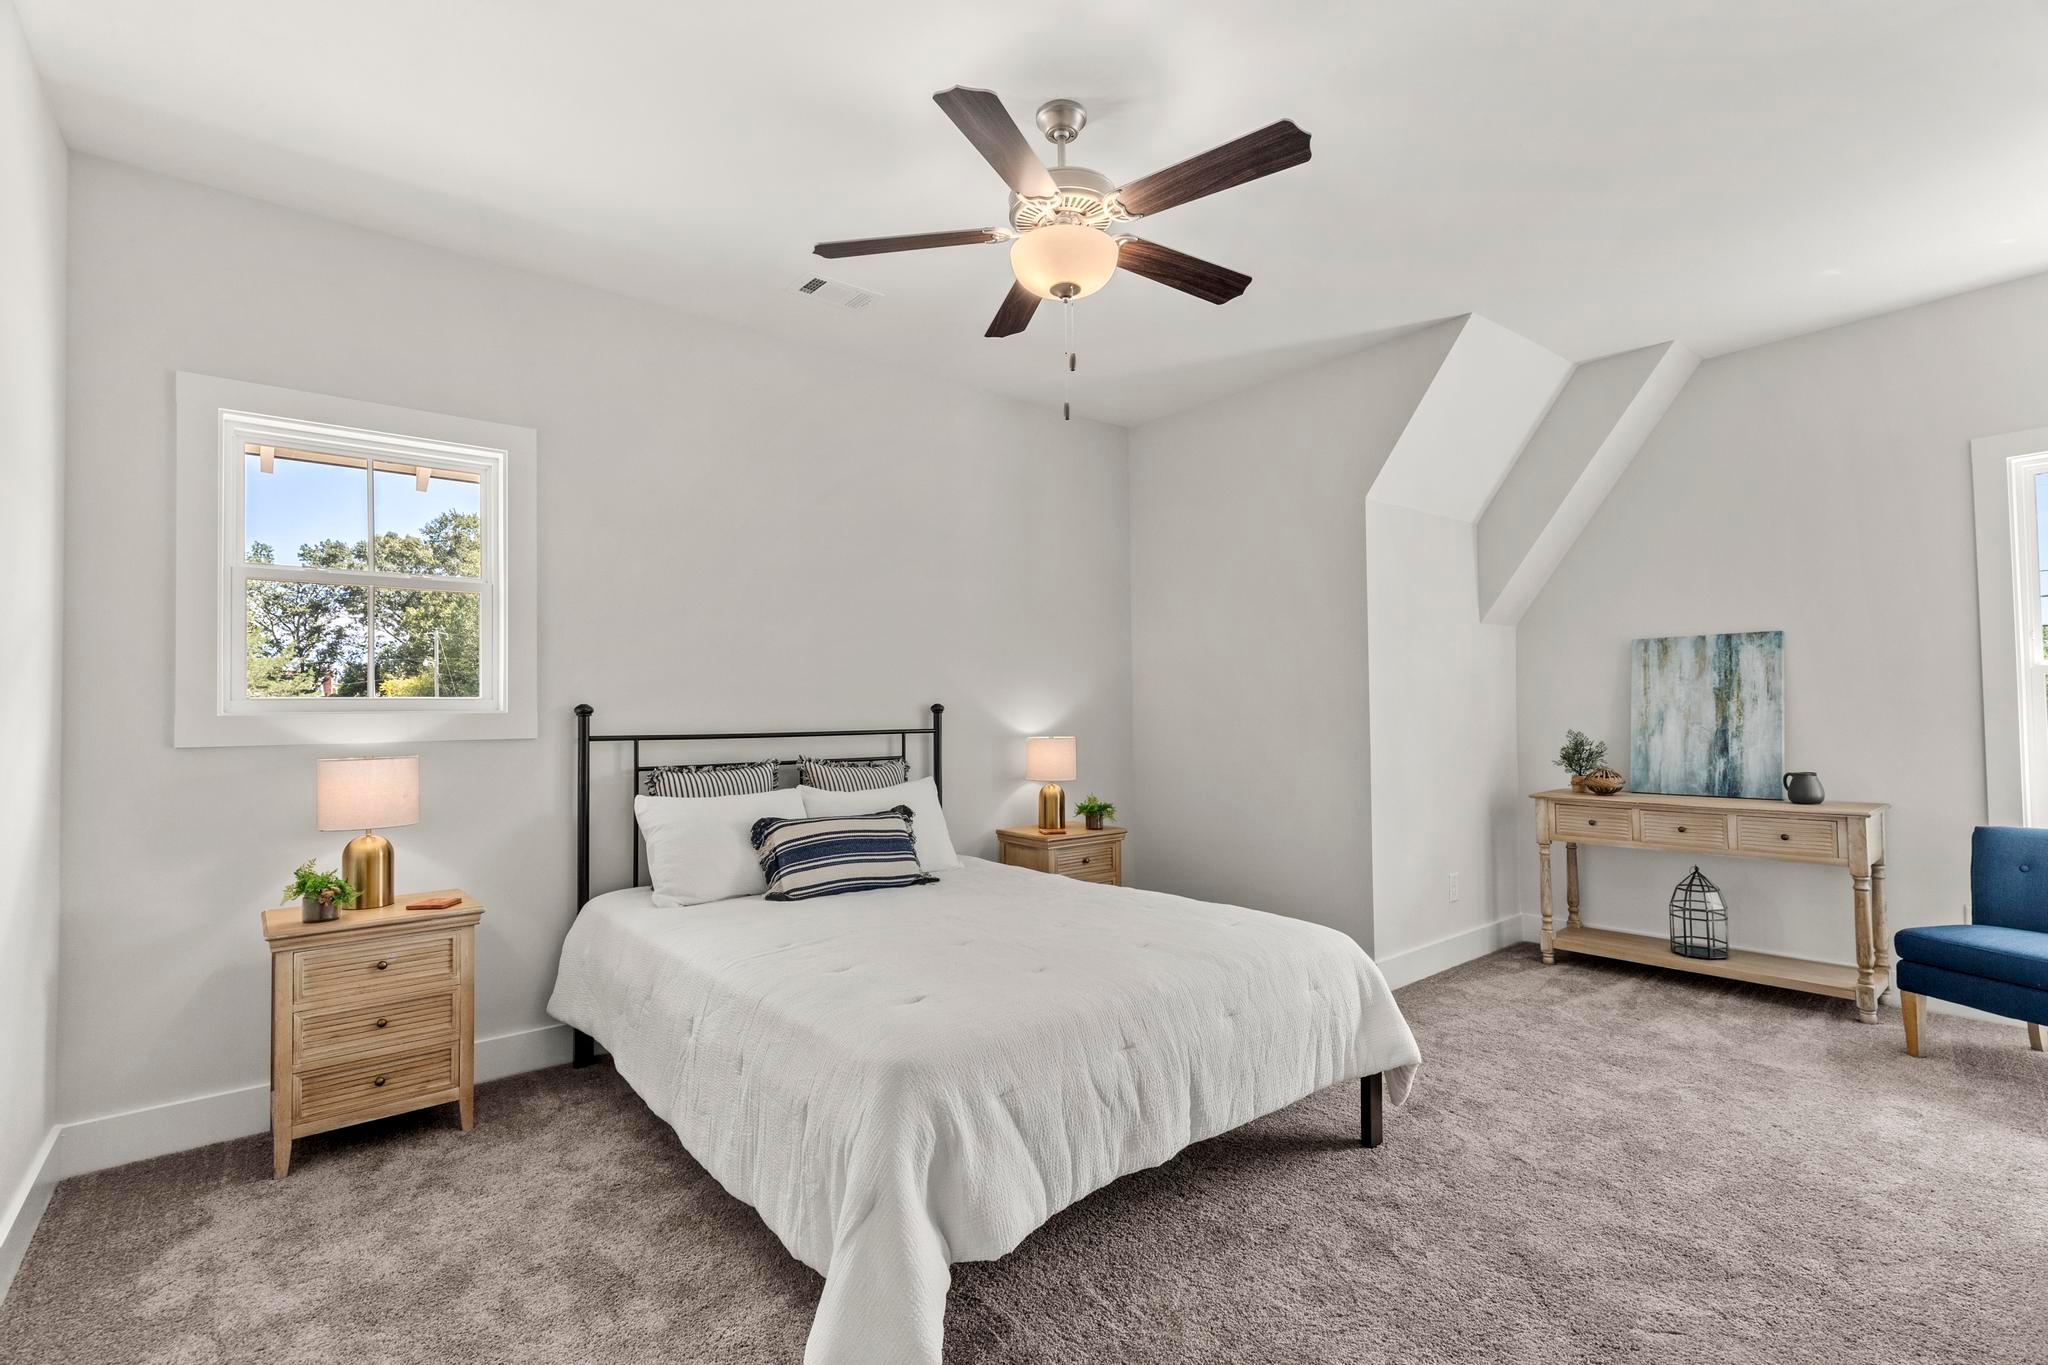 Bedroom featured in the Townhome - 2 Car Interior Unit By Holland Homes in Auburn-Opelika, AL